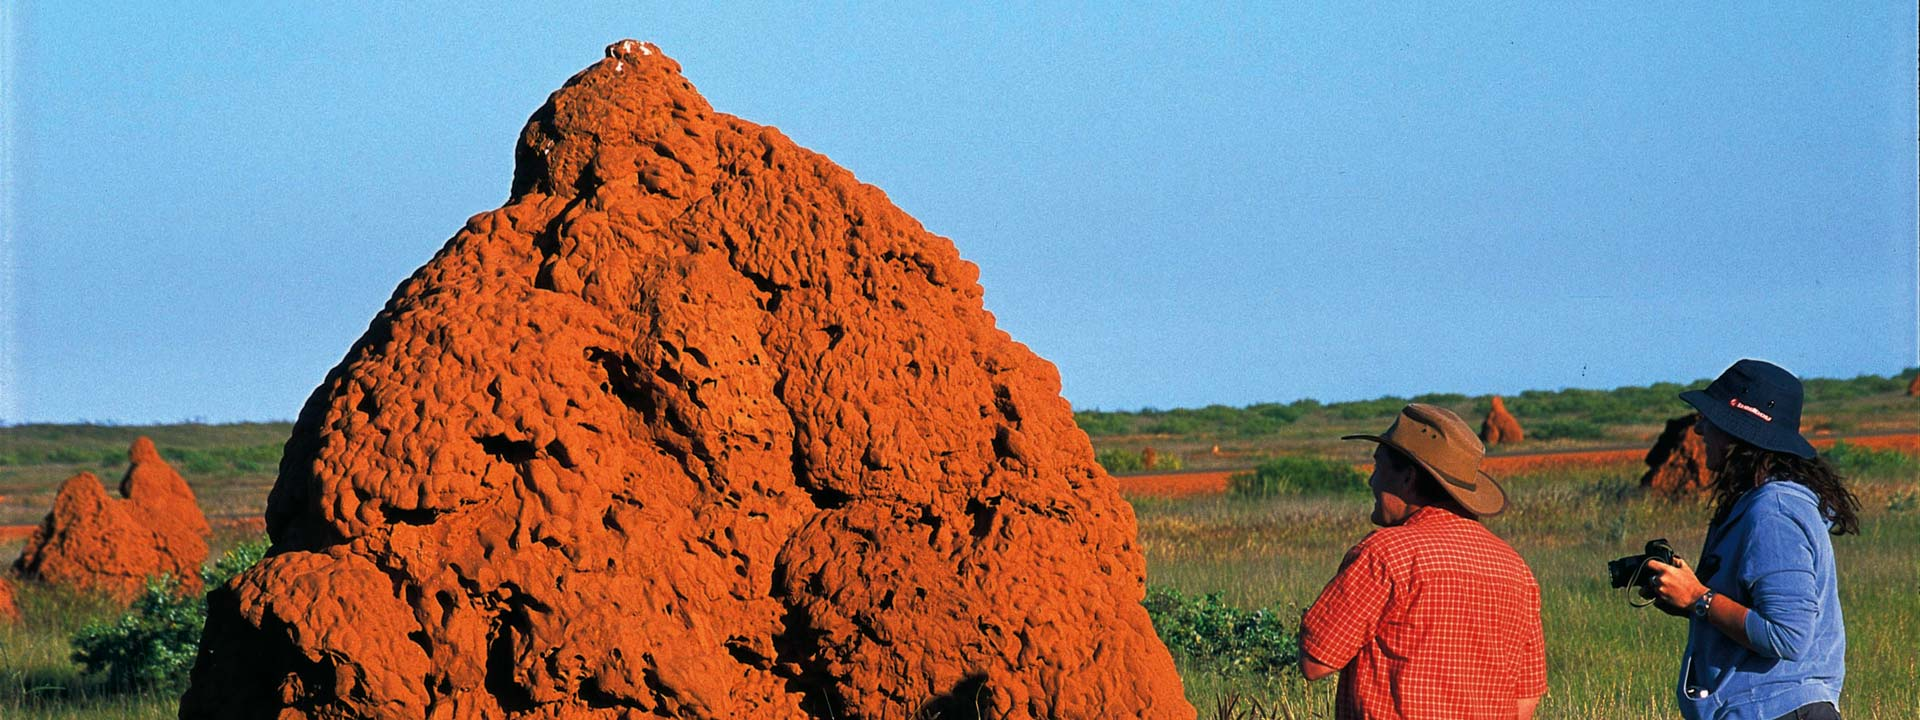 Onslow is known for housing the numerous large termite mounds